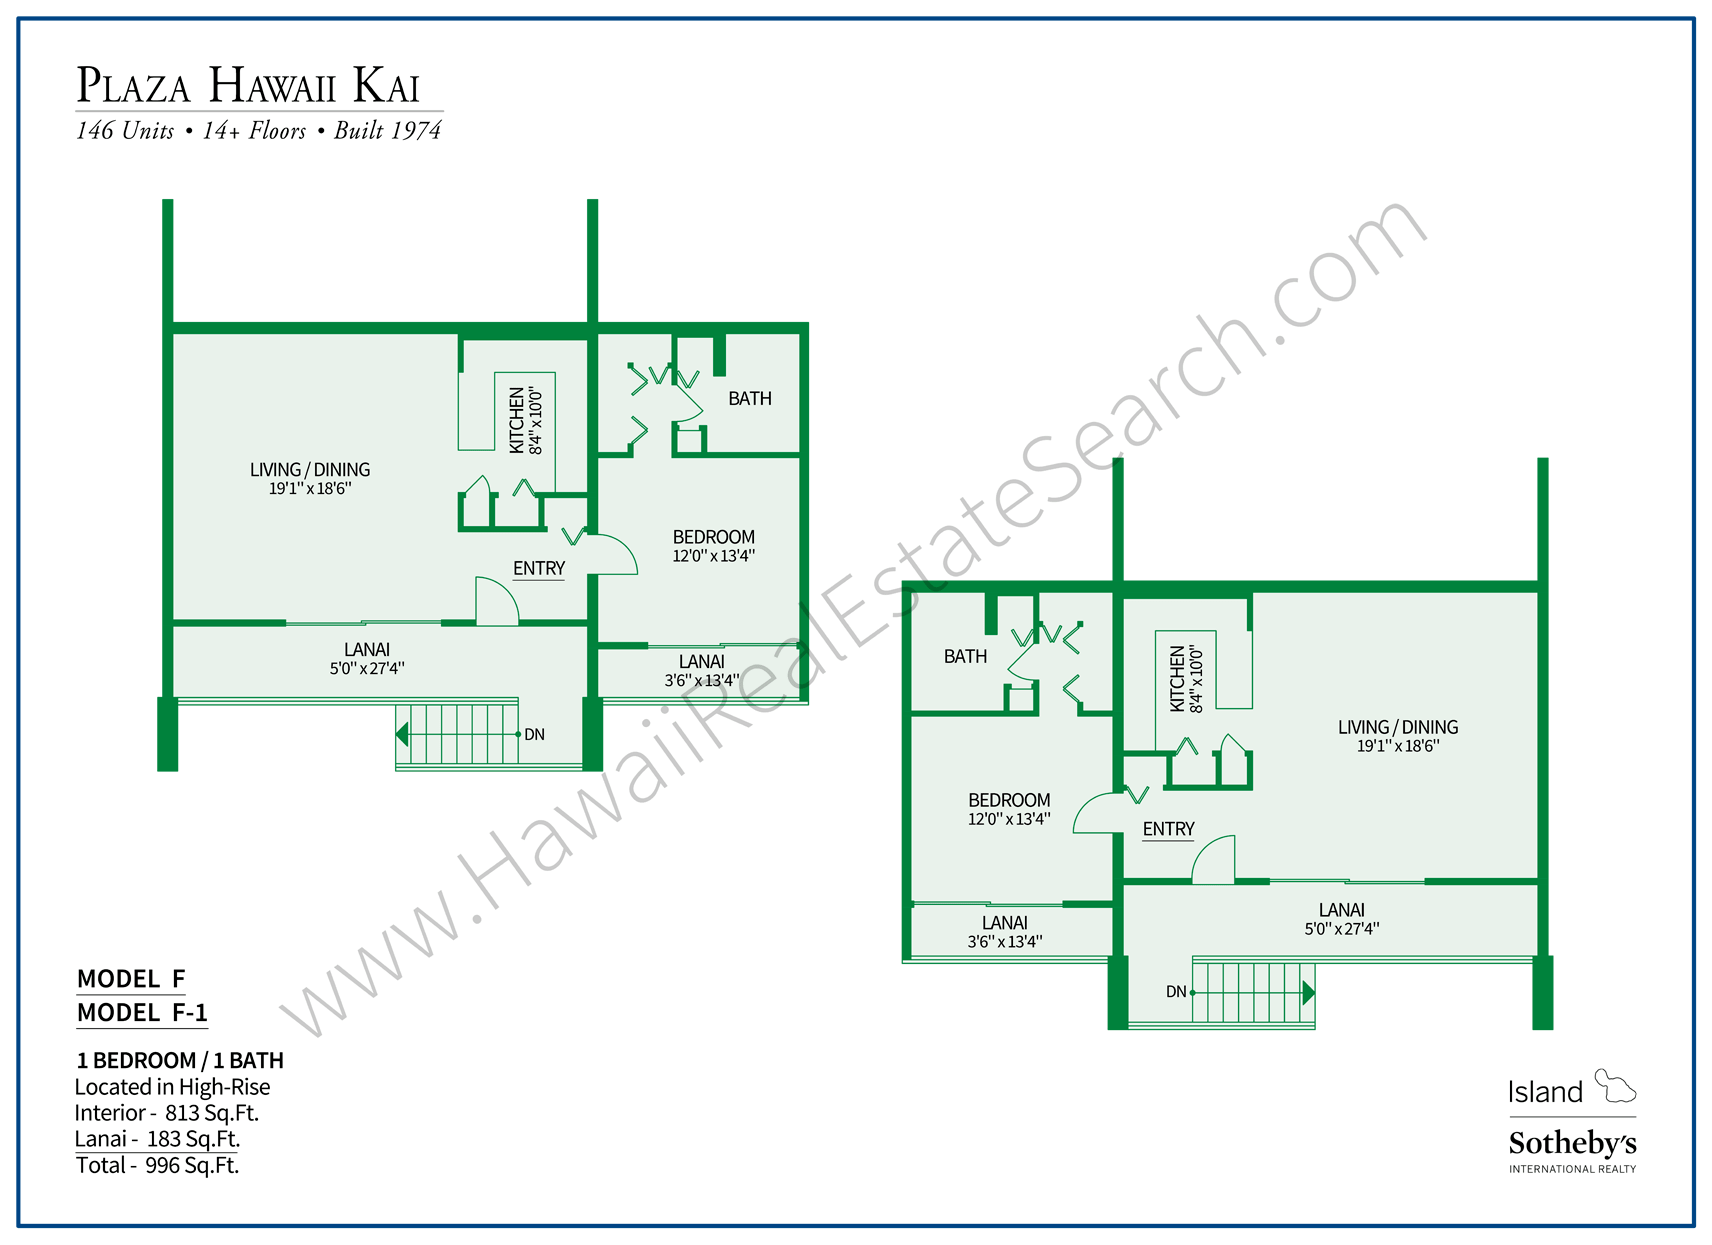 Plaza Hawaii Kai Floor Plan F